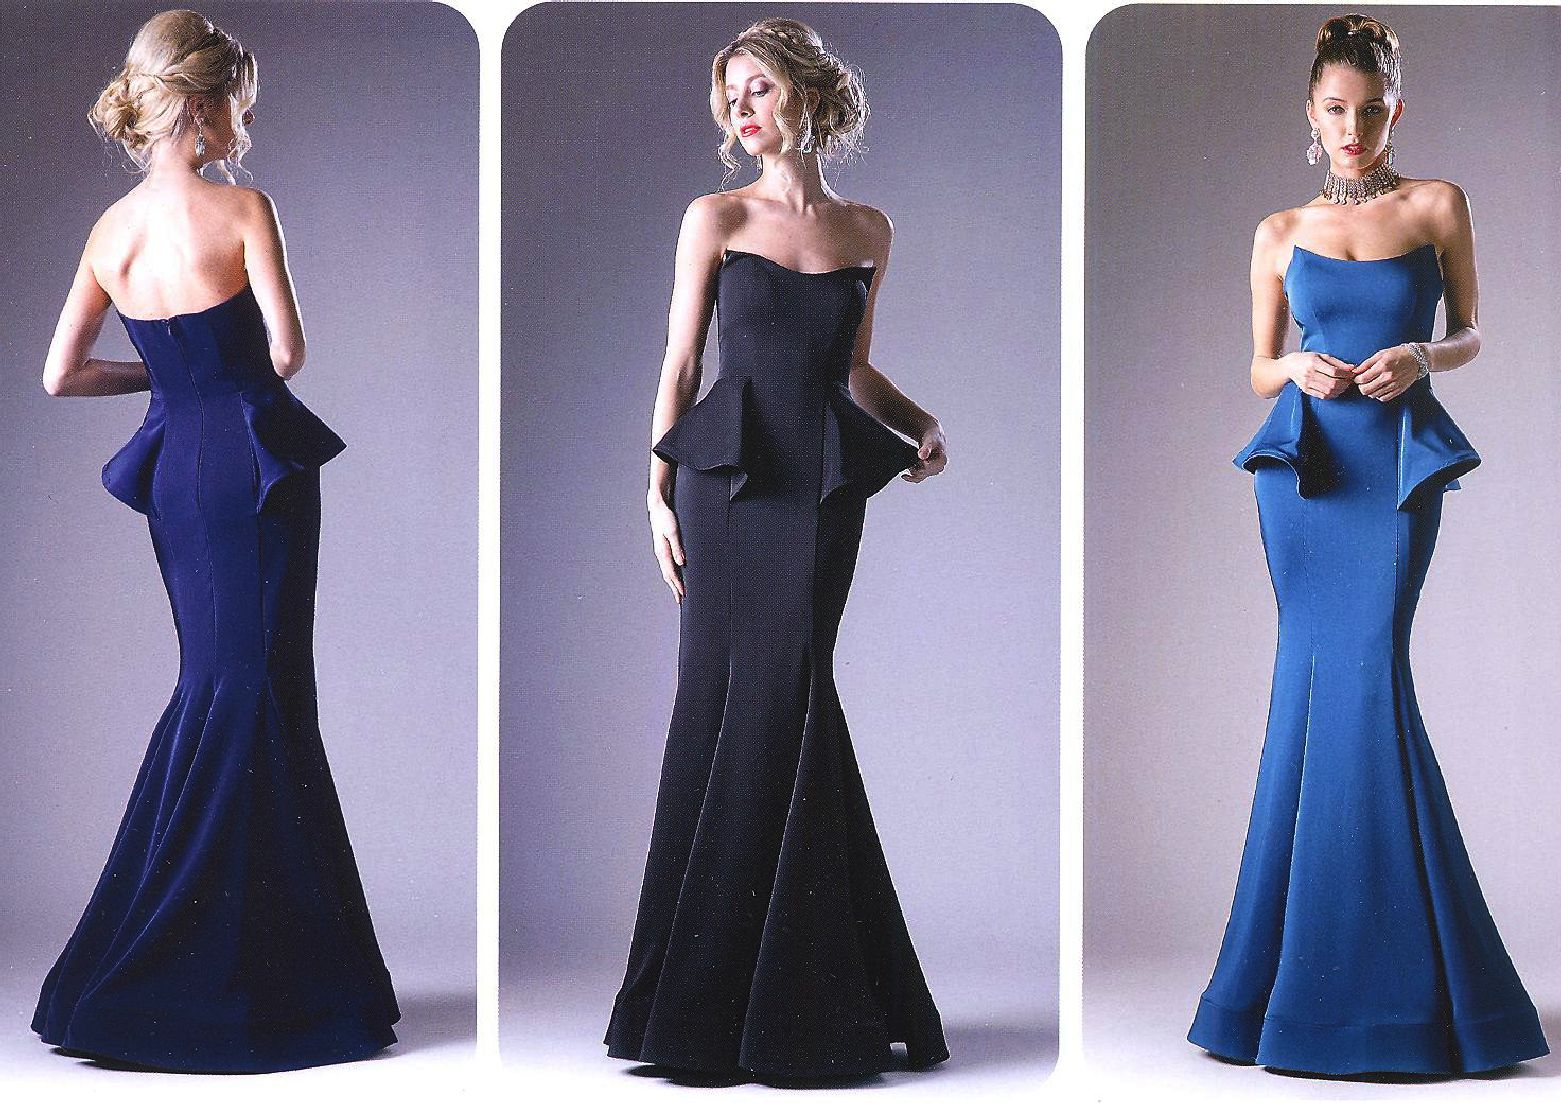 Prom dresses evening dresses under by cinderellaucbrueaddaucbr